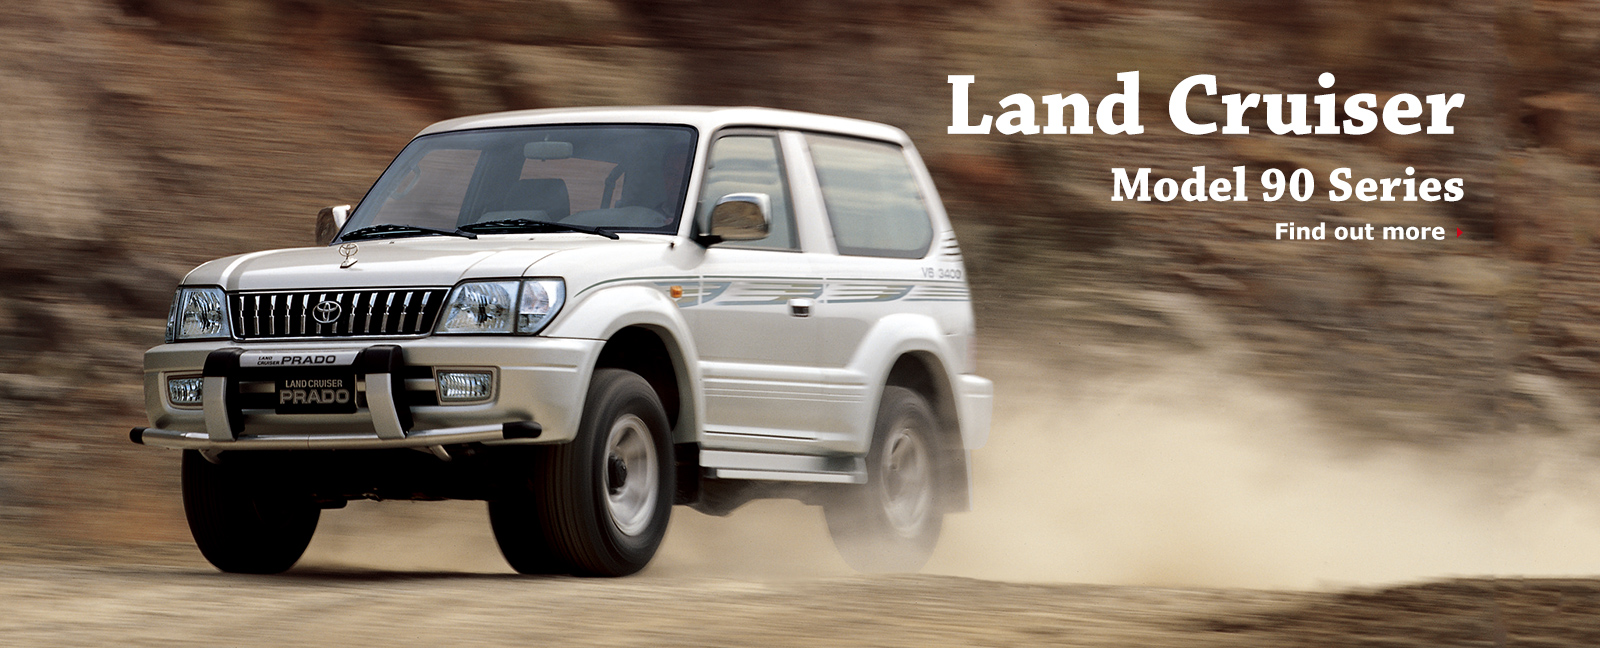 Land Cruiser Model 90 Series Find out more